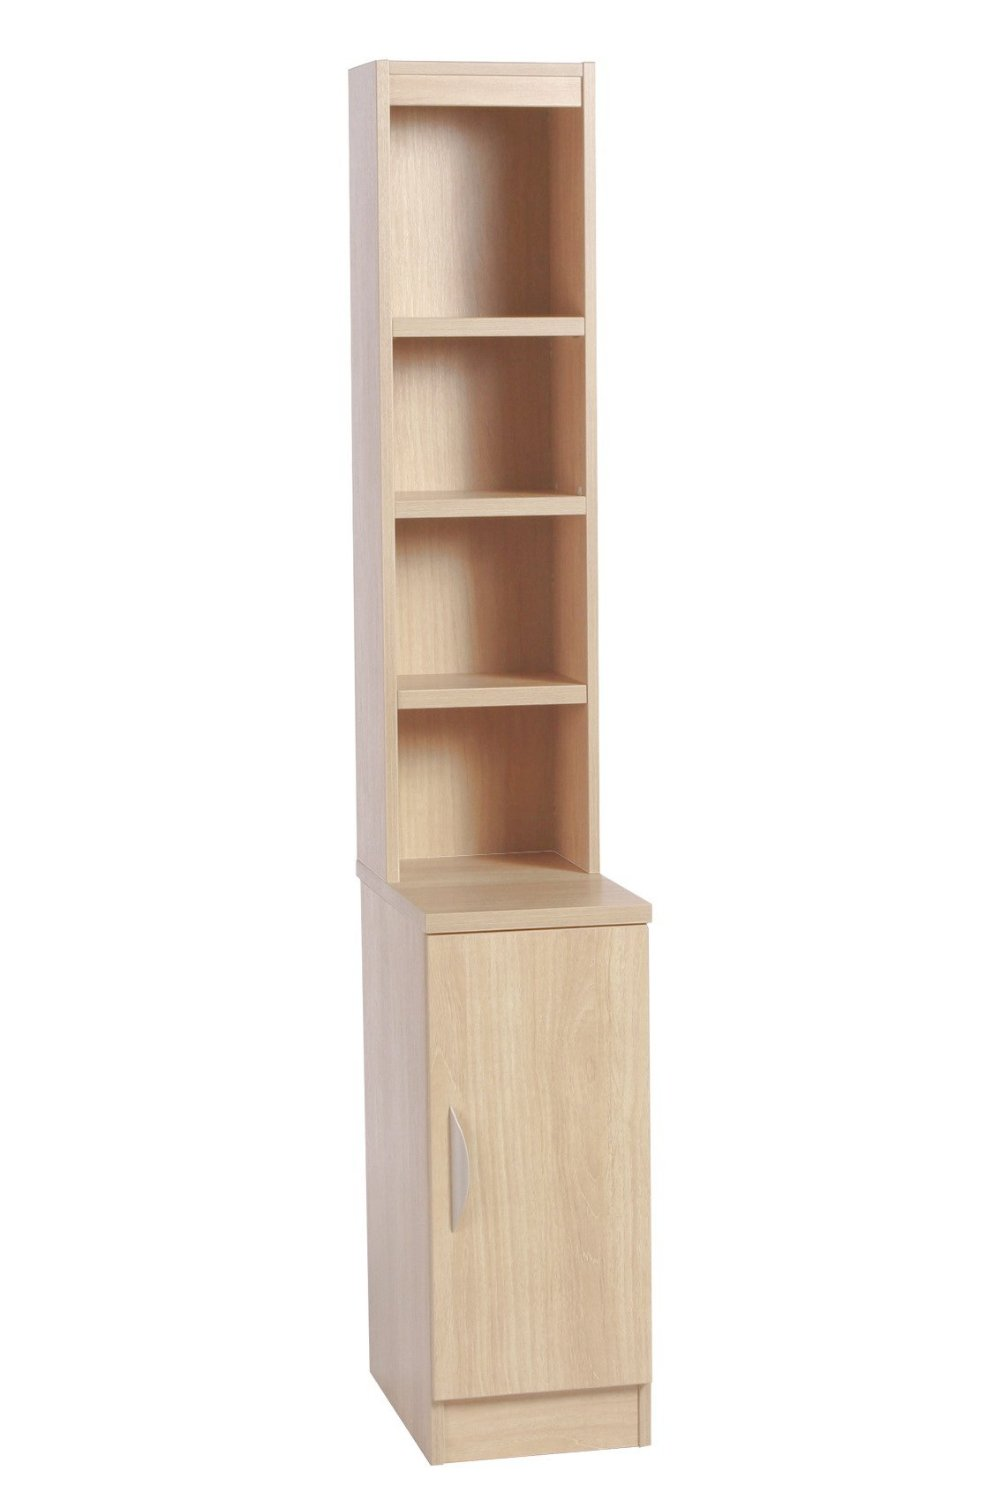 DESK HEIGHT CUPBOARD 300MM WIDE WITH HUTCH